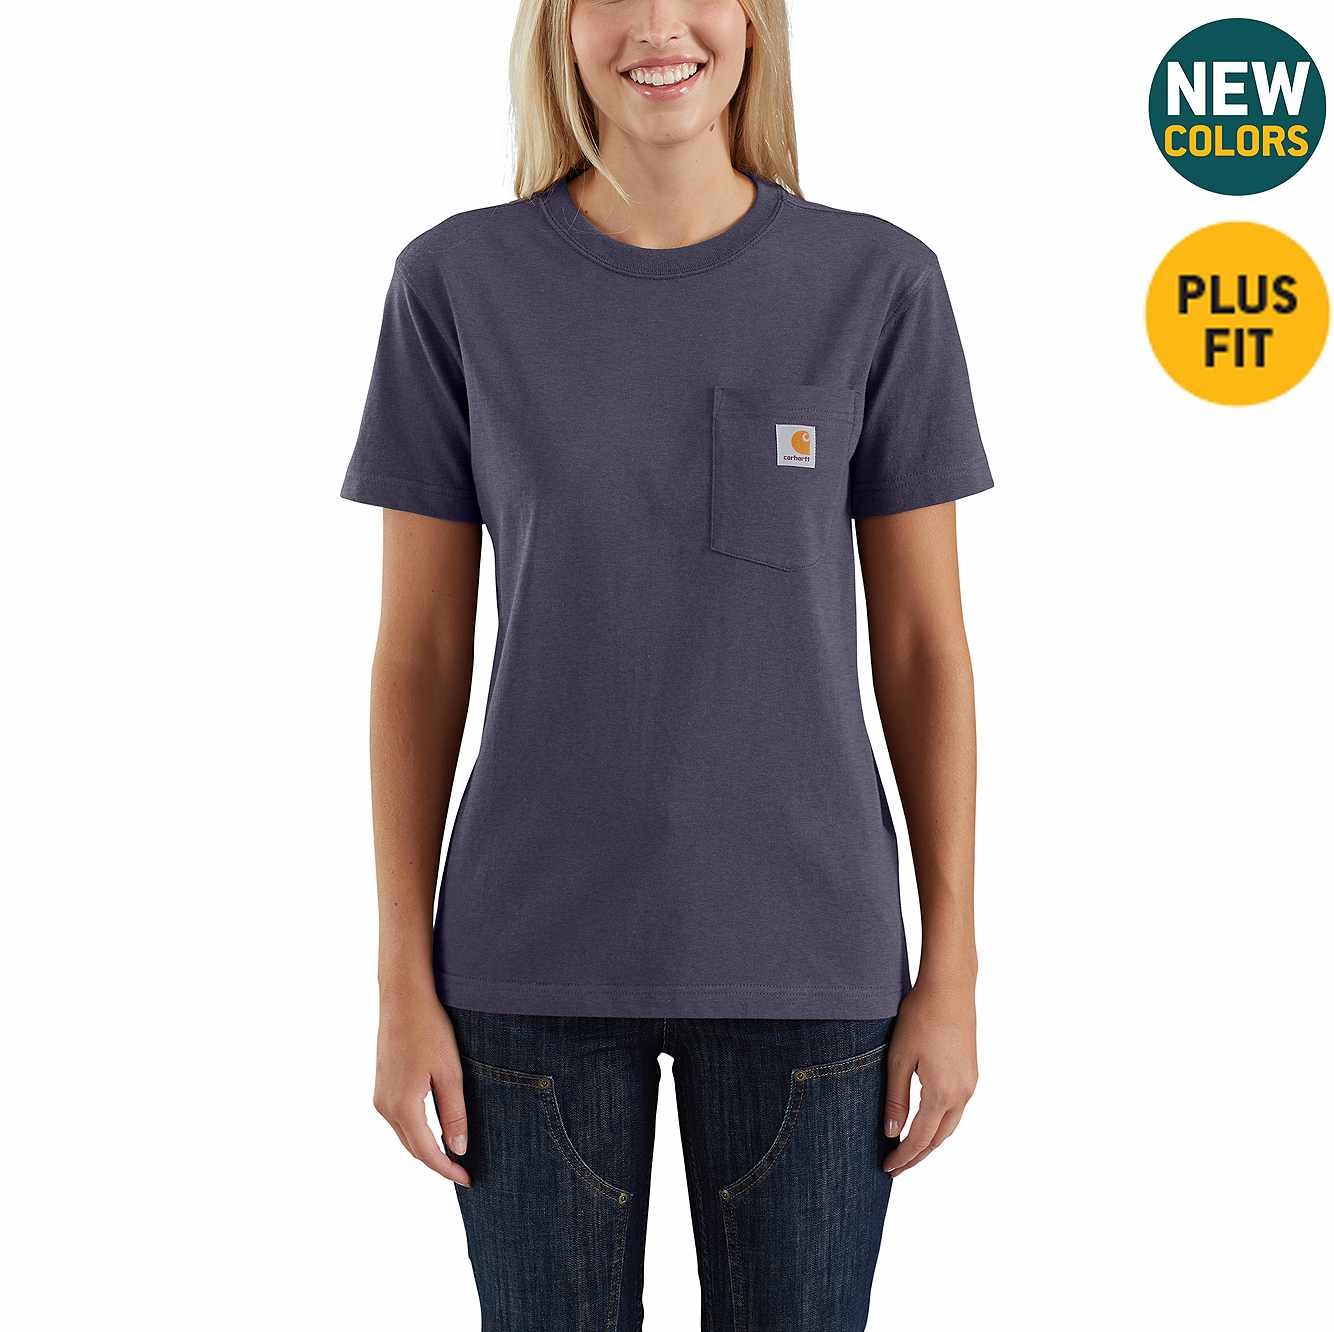 Picture of WK87 Workwear Pocket T-Shirt in Graystone Heather